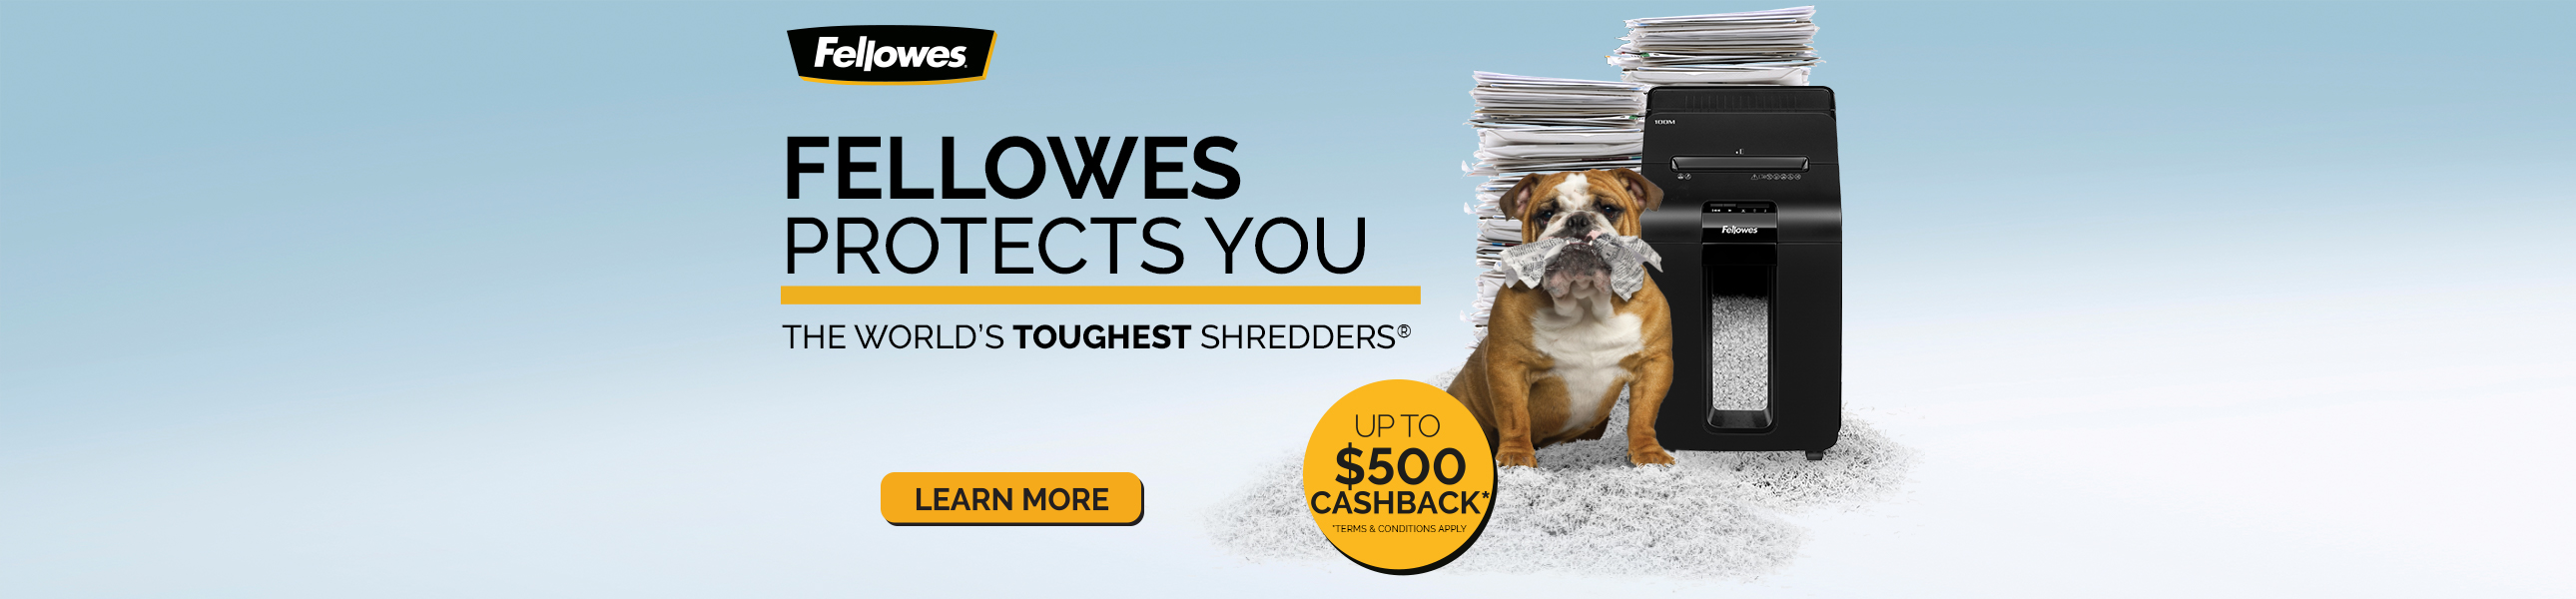 Fellowes Protects You - World's Toughest Shredders